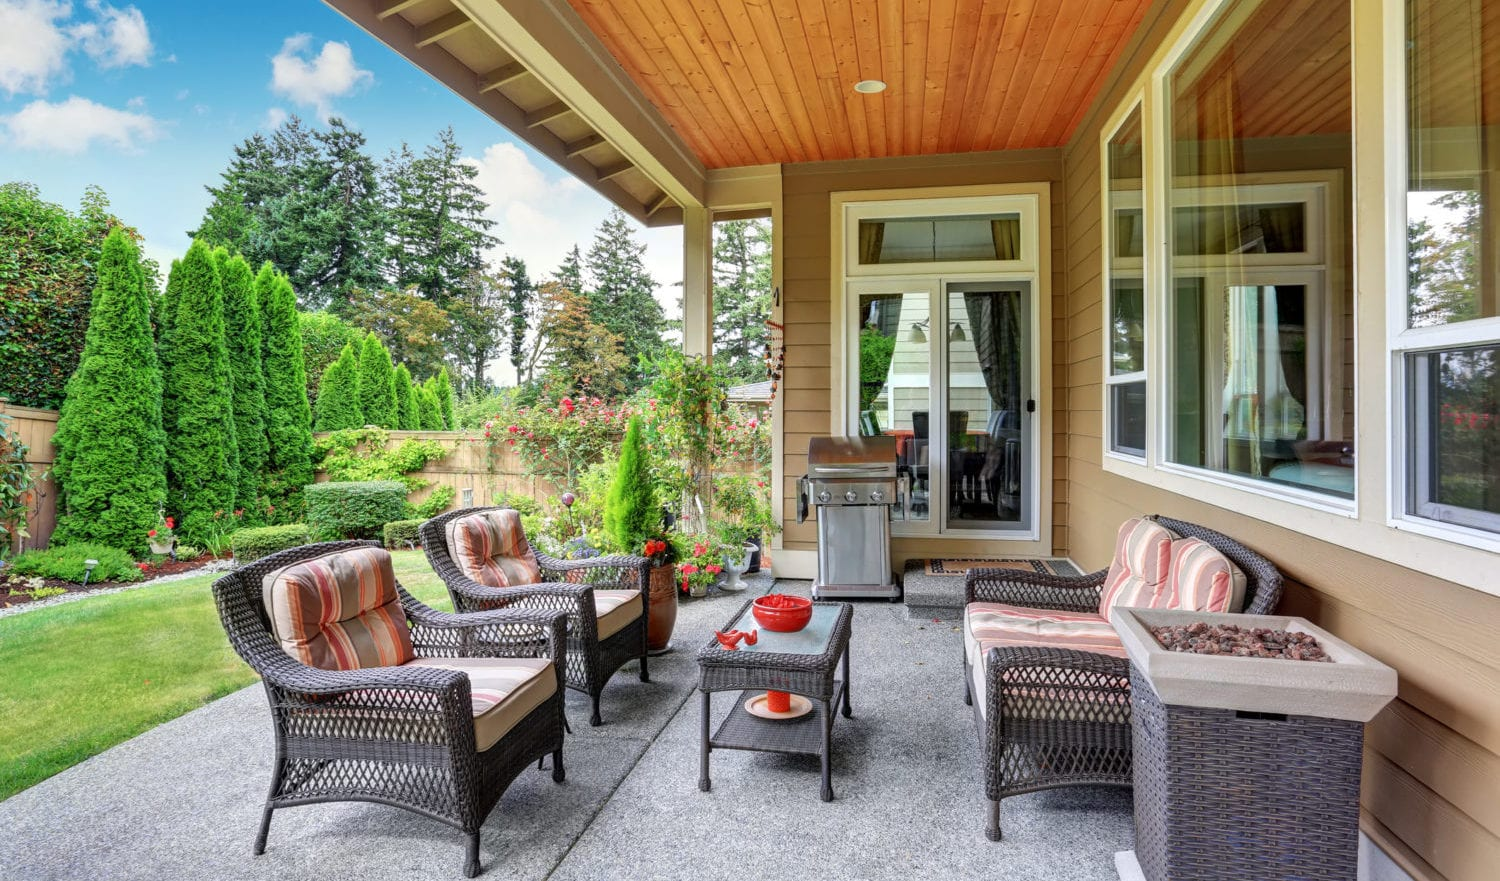 Cozy covered sitting area with wicker chairs and barbecue. Northwest, USA